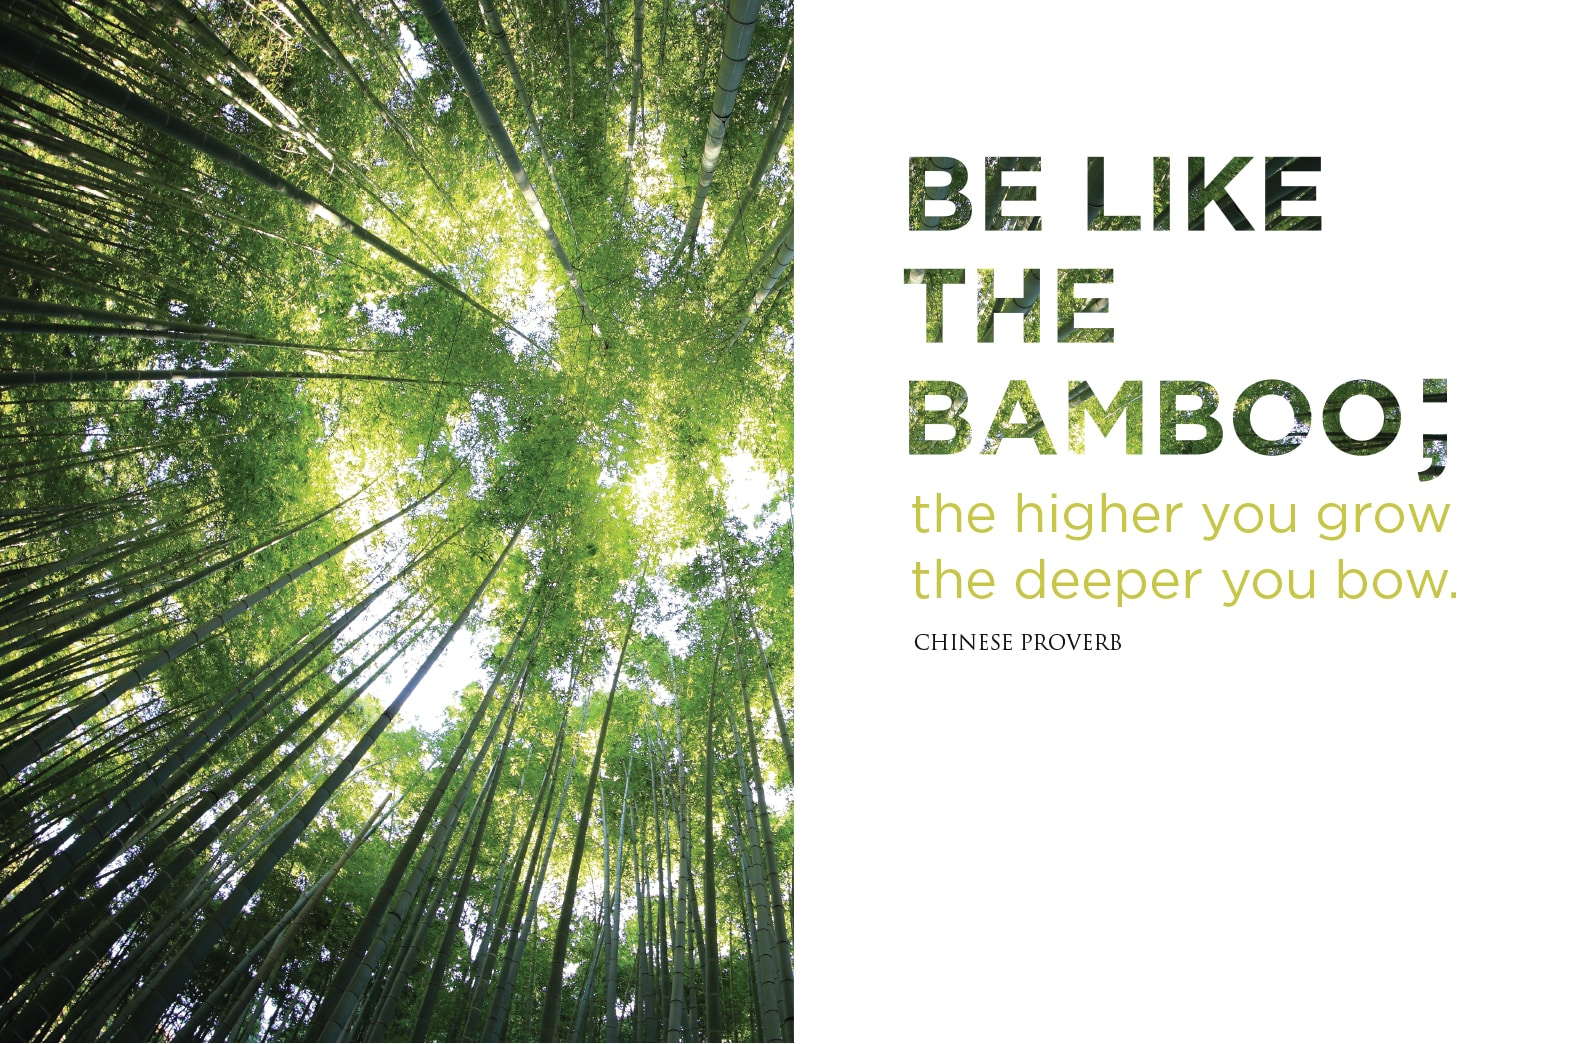 Be like the bamboo